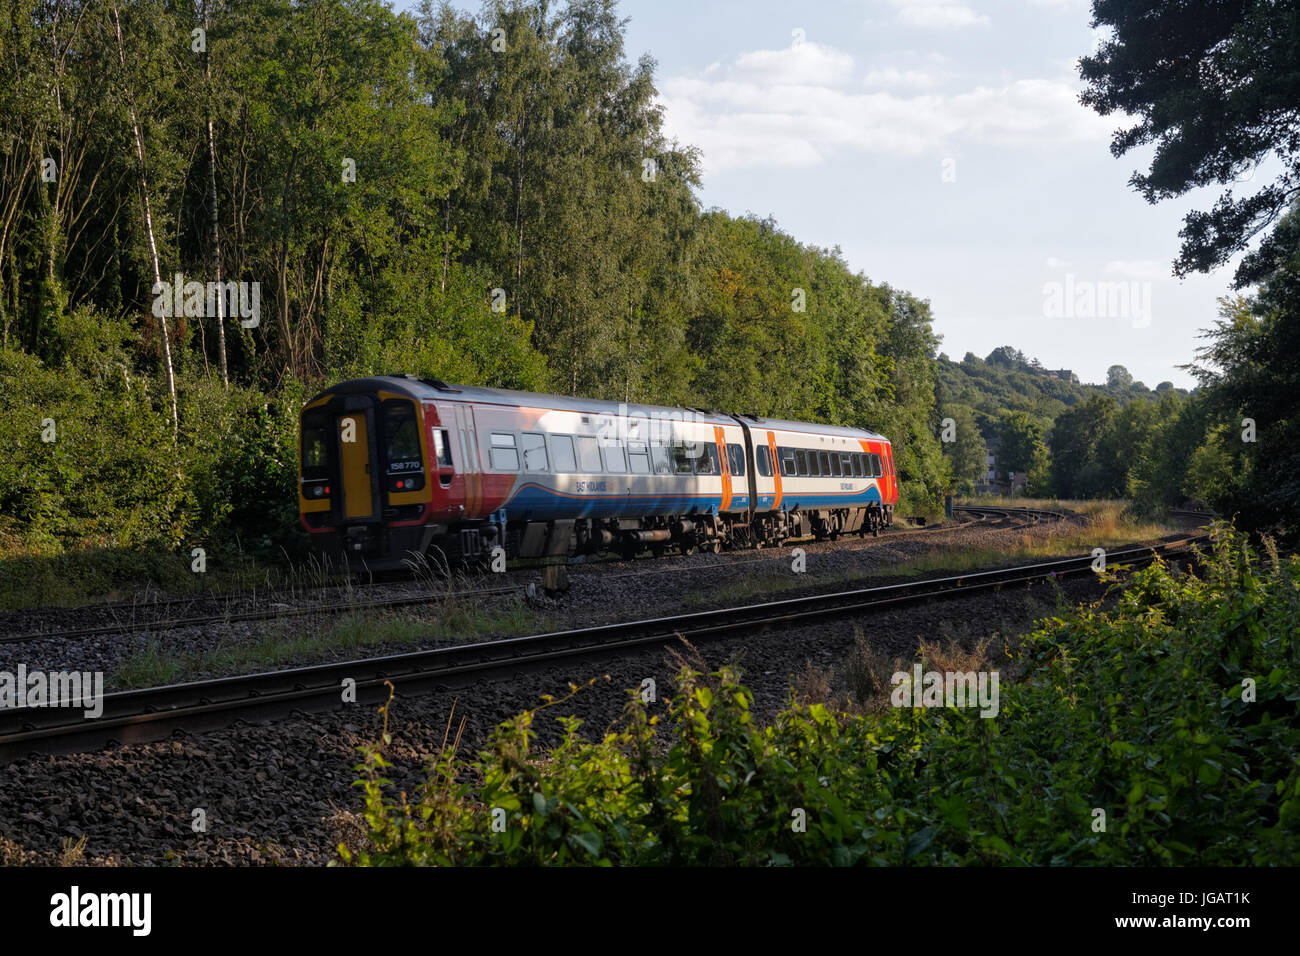 East Midlands Trains class 158 DMU near Dore, Sheffield, UK - Stock Image